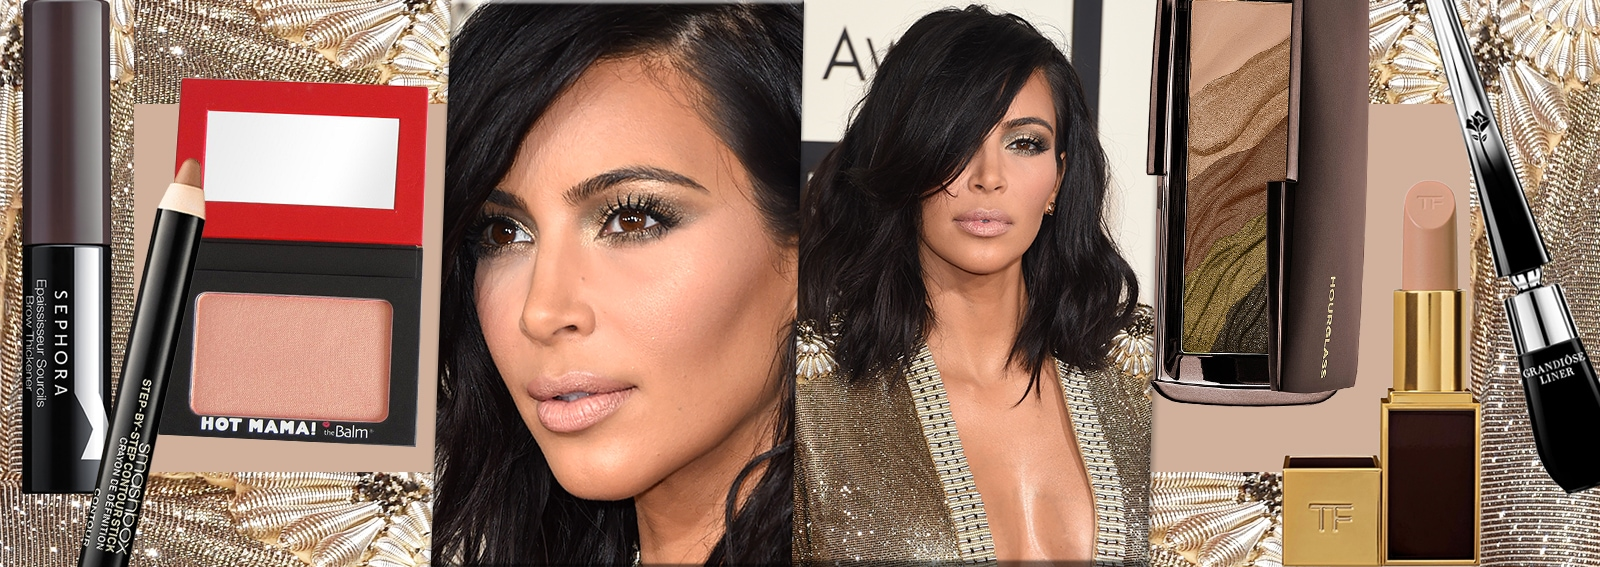 cover-kim-kardashian-make-up-copia-desktop